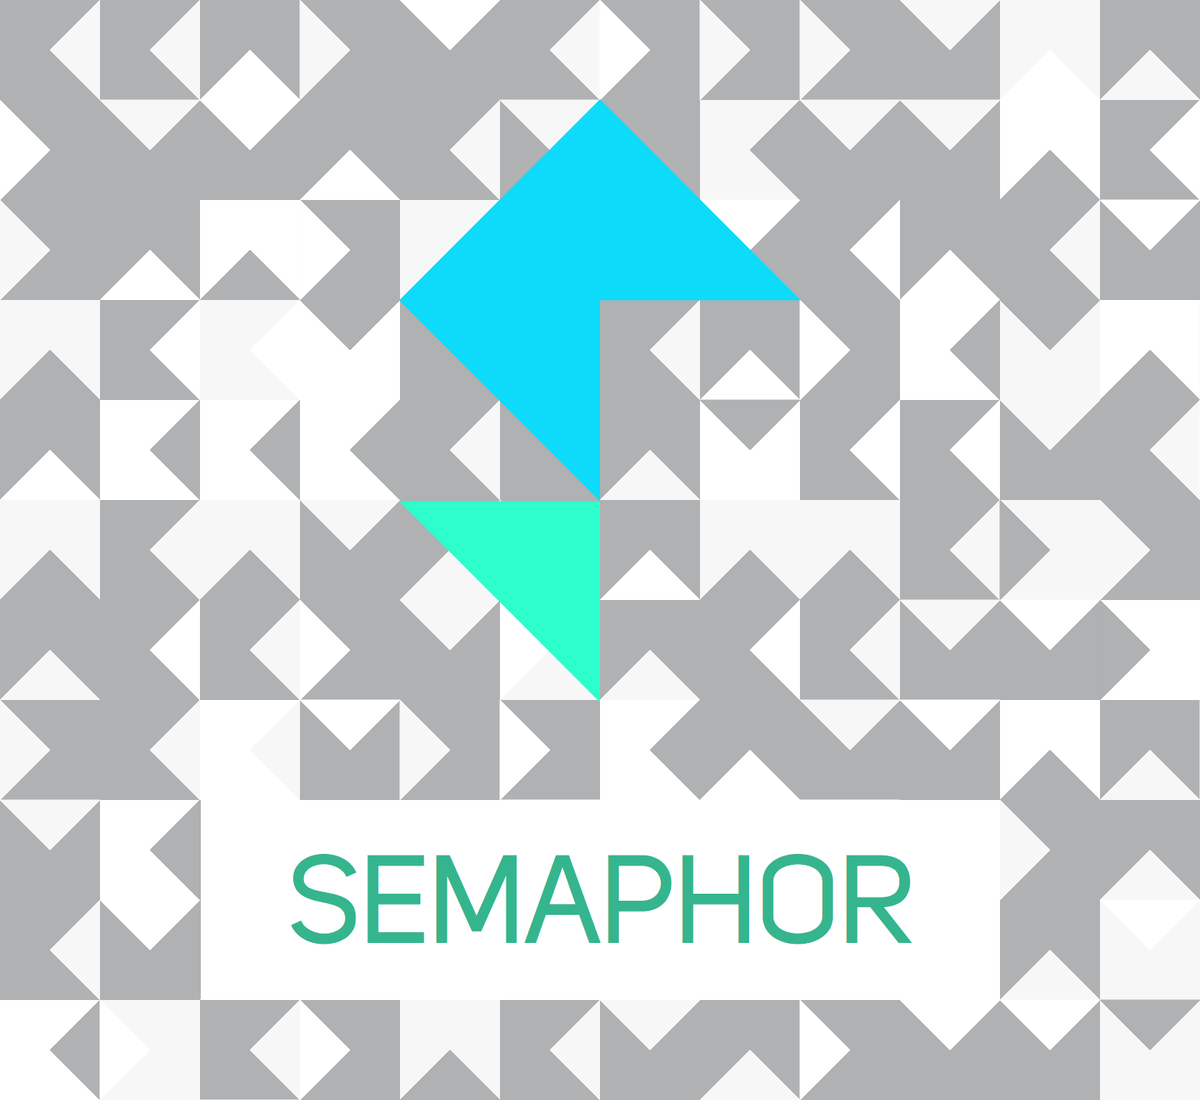 We are pleased to announce #Semaphor, a Zero Knowledge collaboration tool for teams: https://t.co/XEYZMrNgGP https://t.co/YCWavF9CYX